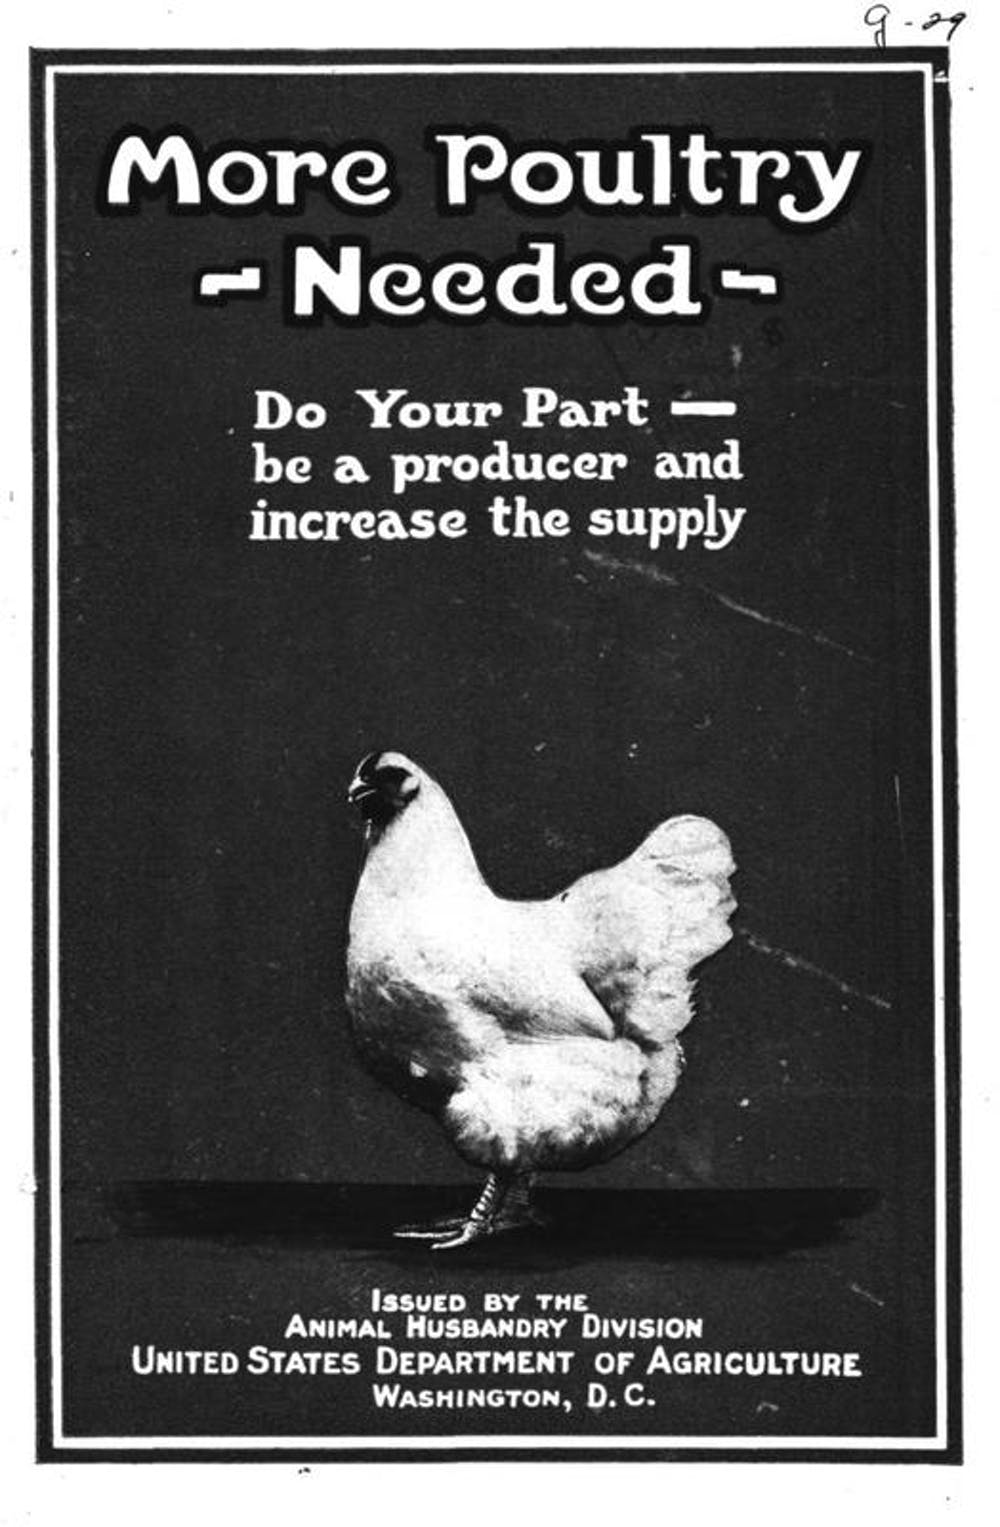 A chicken in every backyard: Urban poultry needs more regulation to